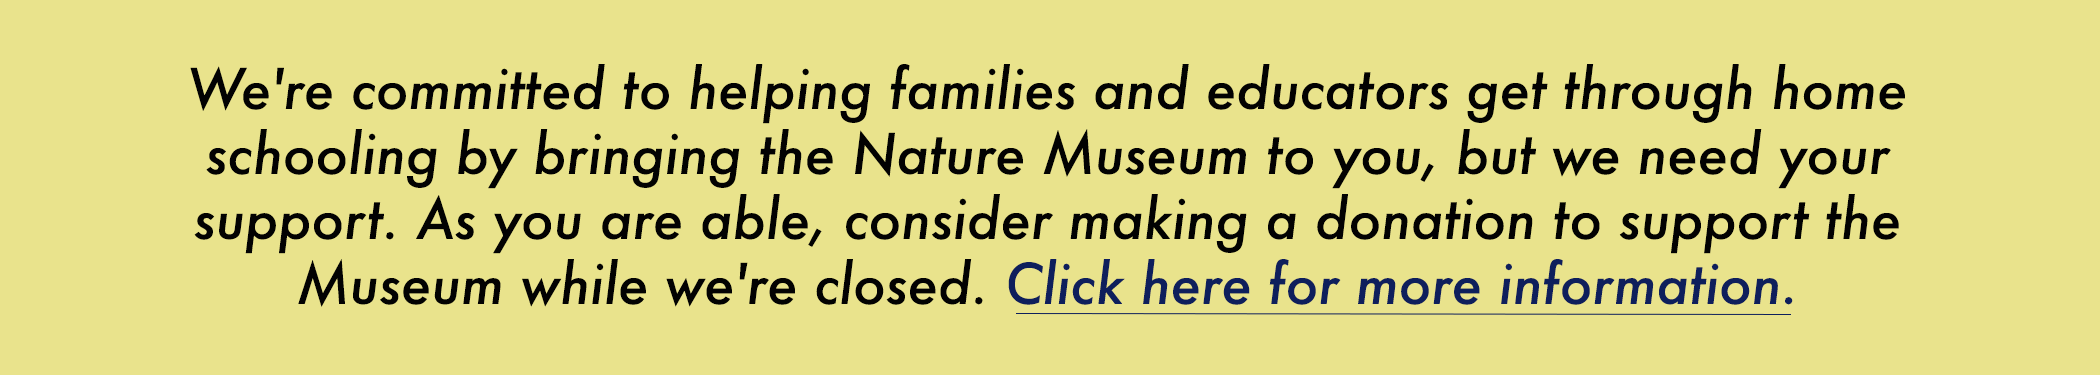 We're committed to helping families and educators get through home schooling by bringing the Nature Museum to you, but we need your support. As you are able, consider making a donation to support the Museum while we're closed. Click here for more information.